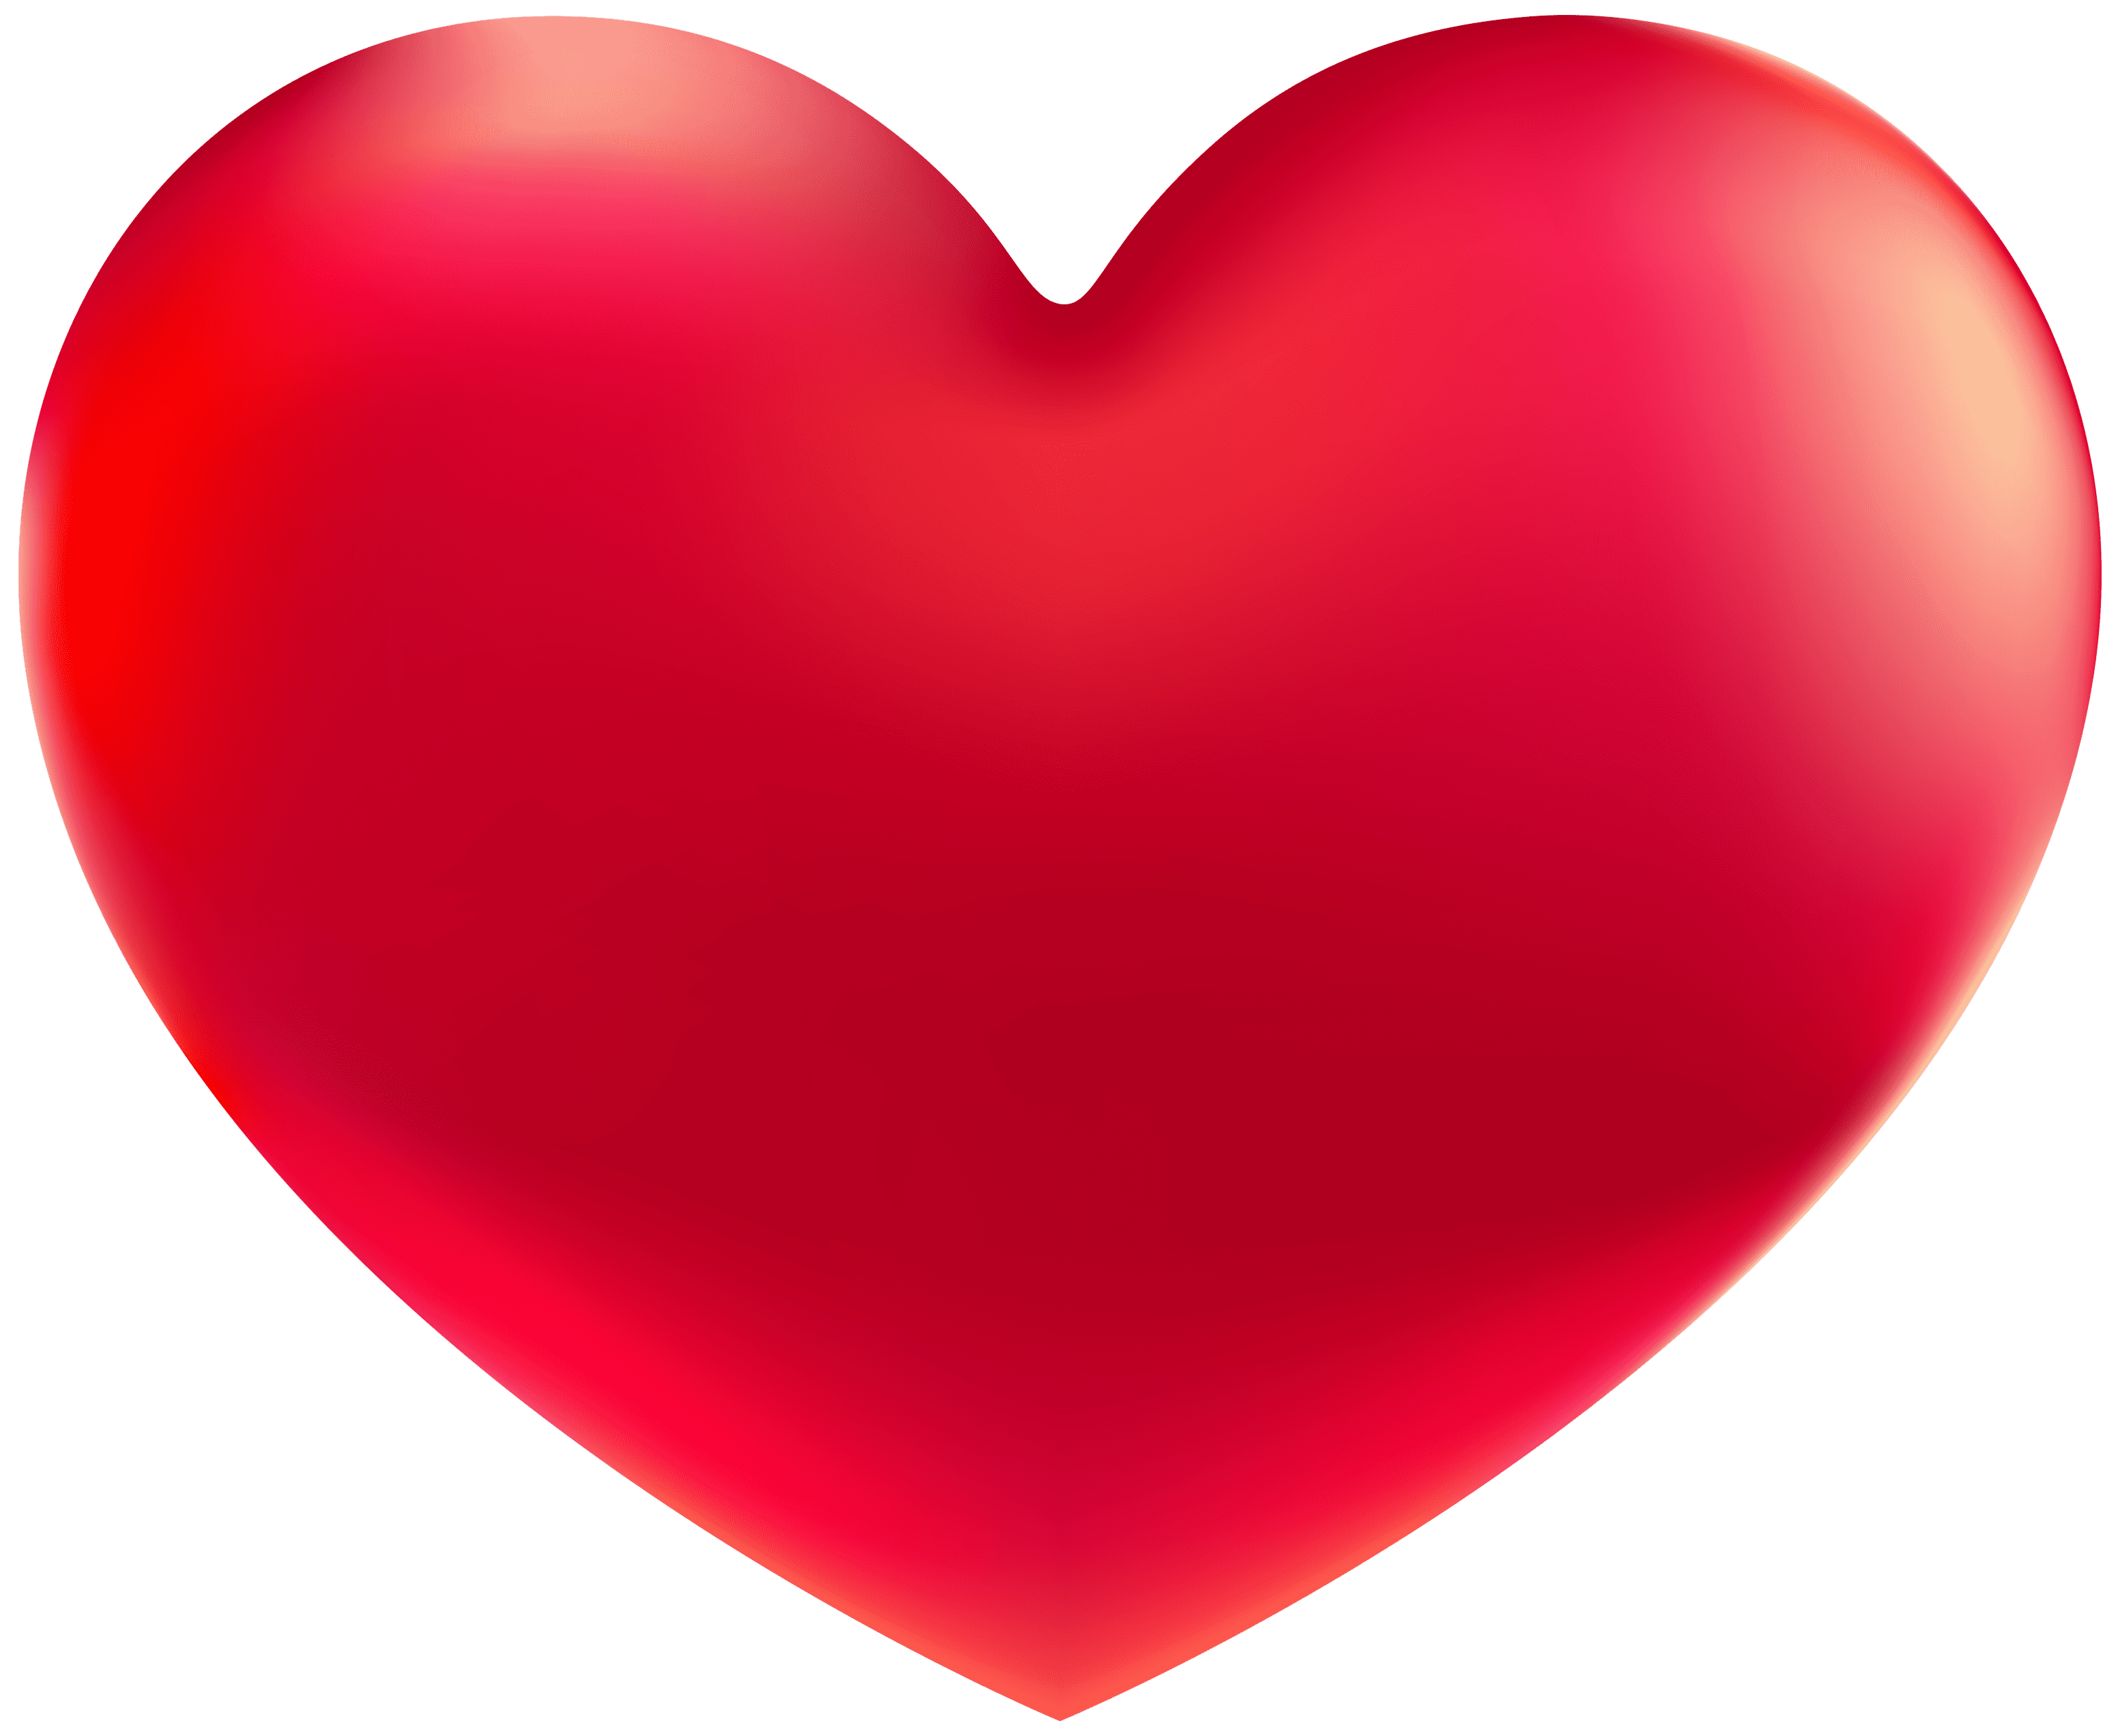 Red Heart Png Clipart Image